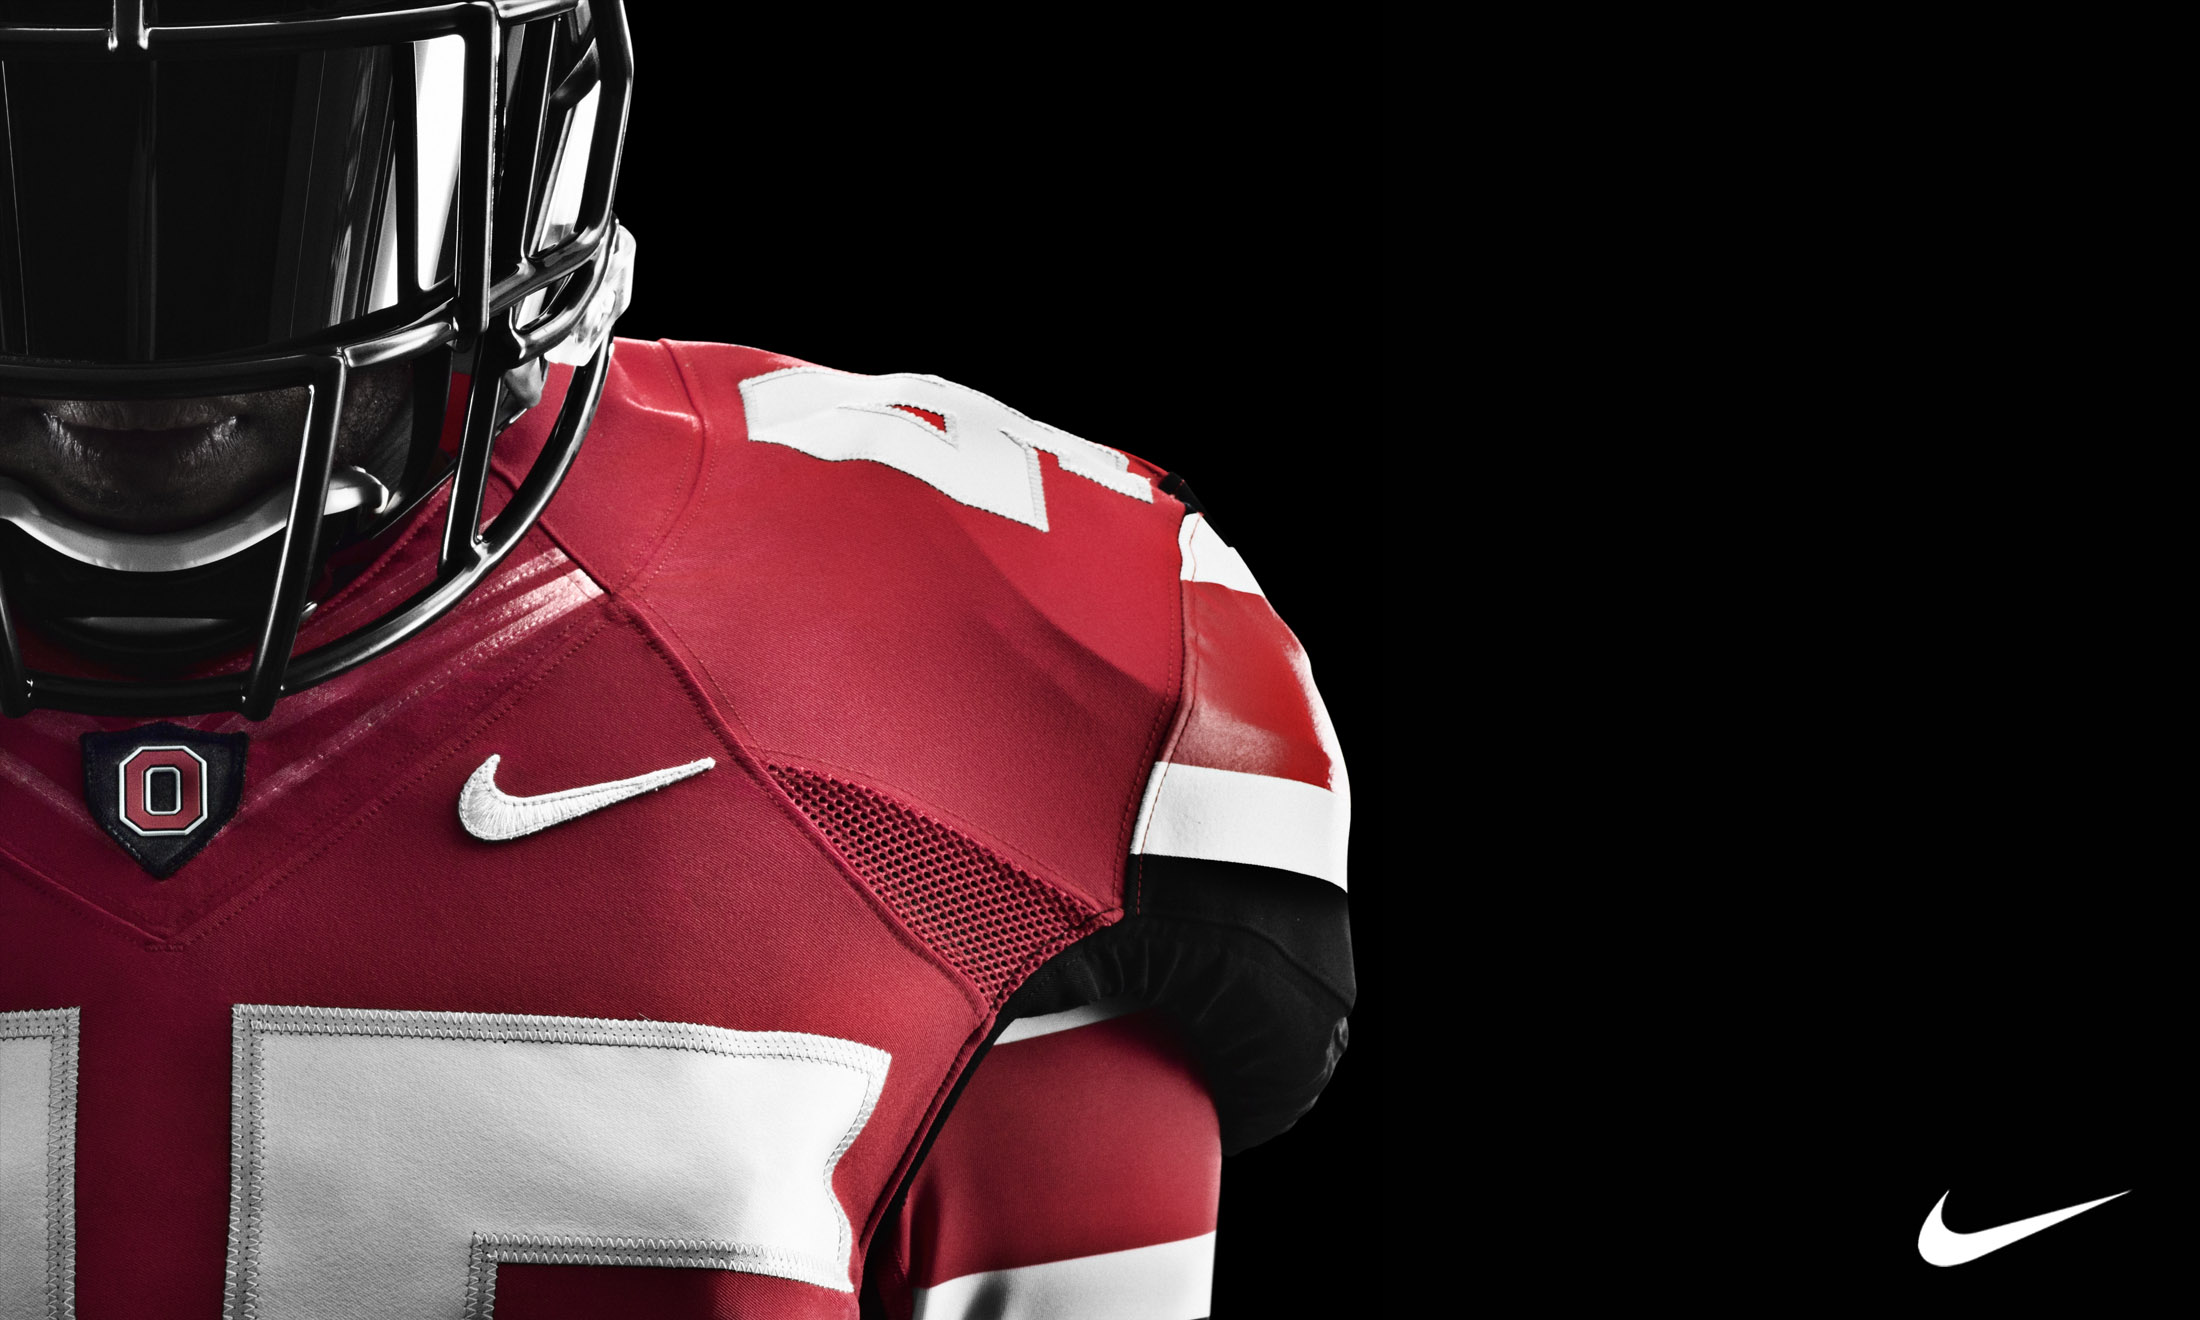 Nike wallpaper american football